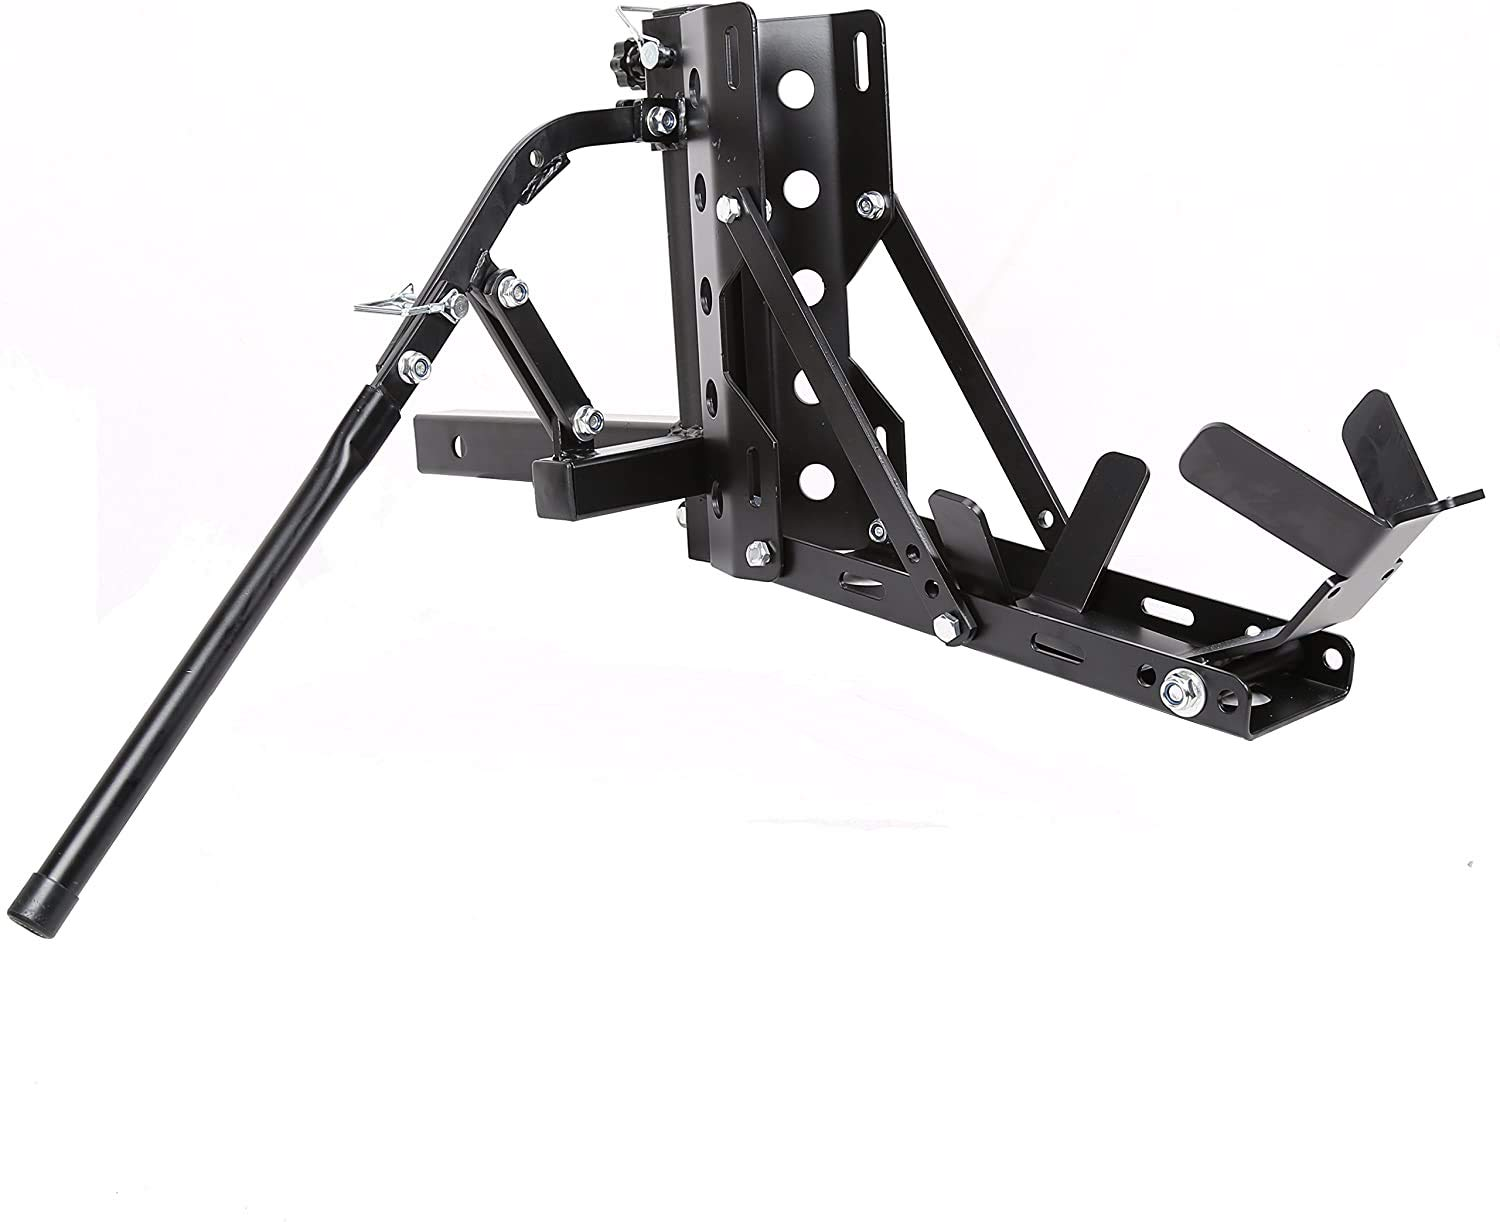 ECOTRIC Motorcycle Scooter Trailer Carrier Tow Dolly Hauler Rack Hitch 800LBS